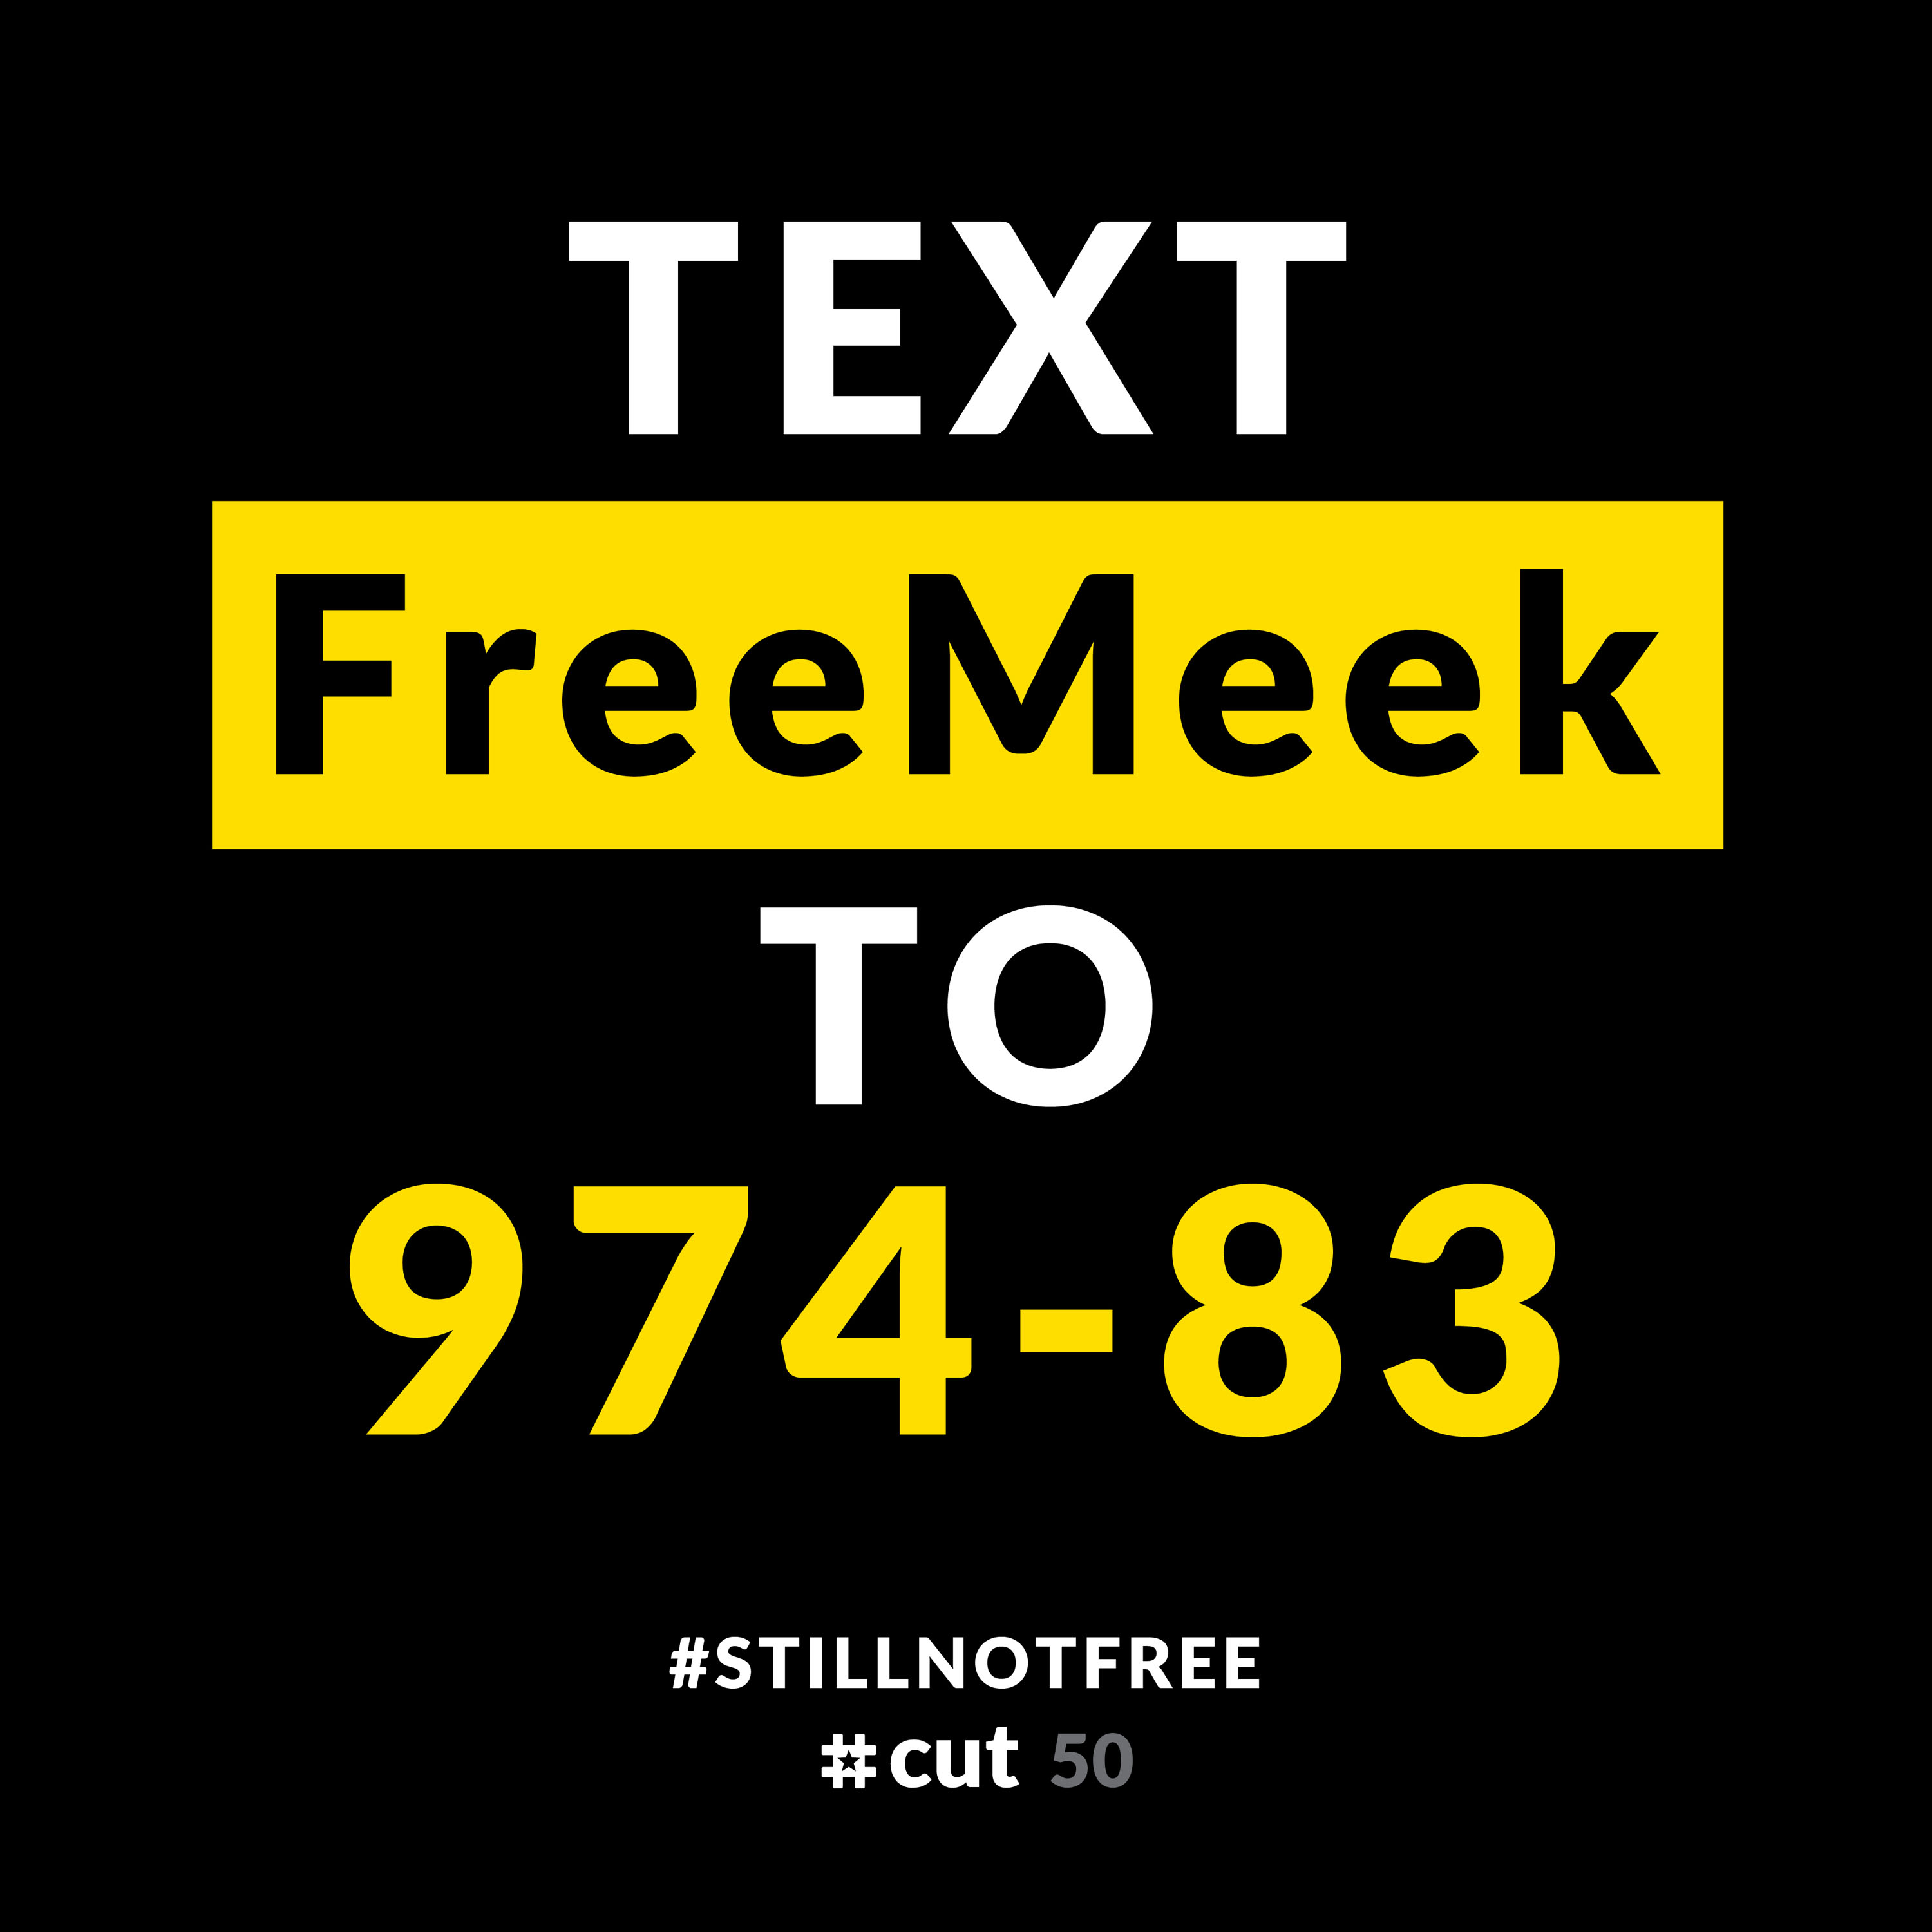 Text to Free Meek